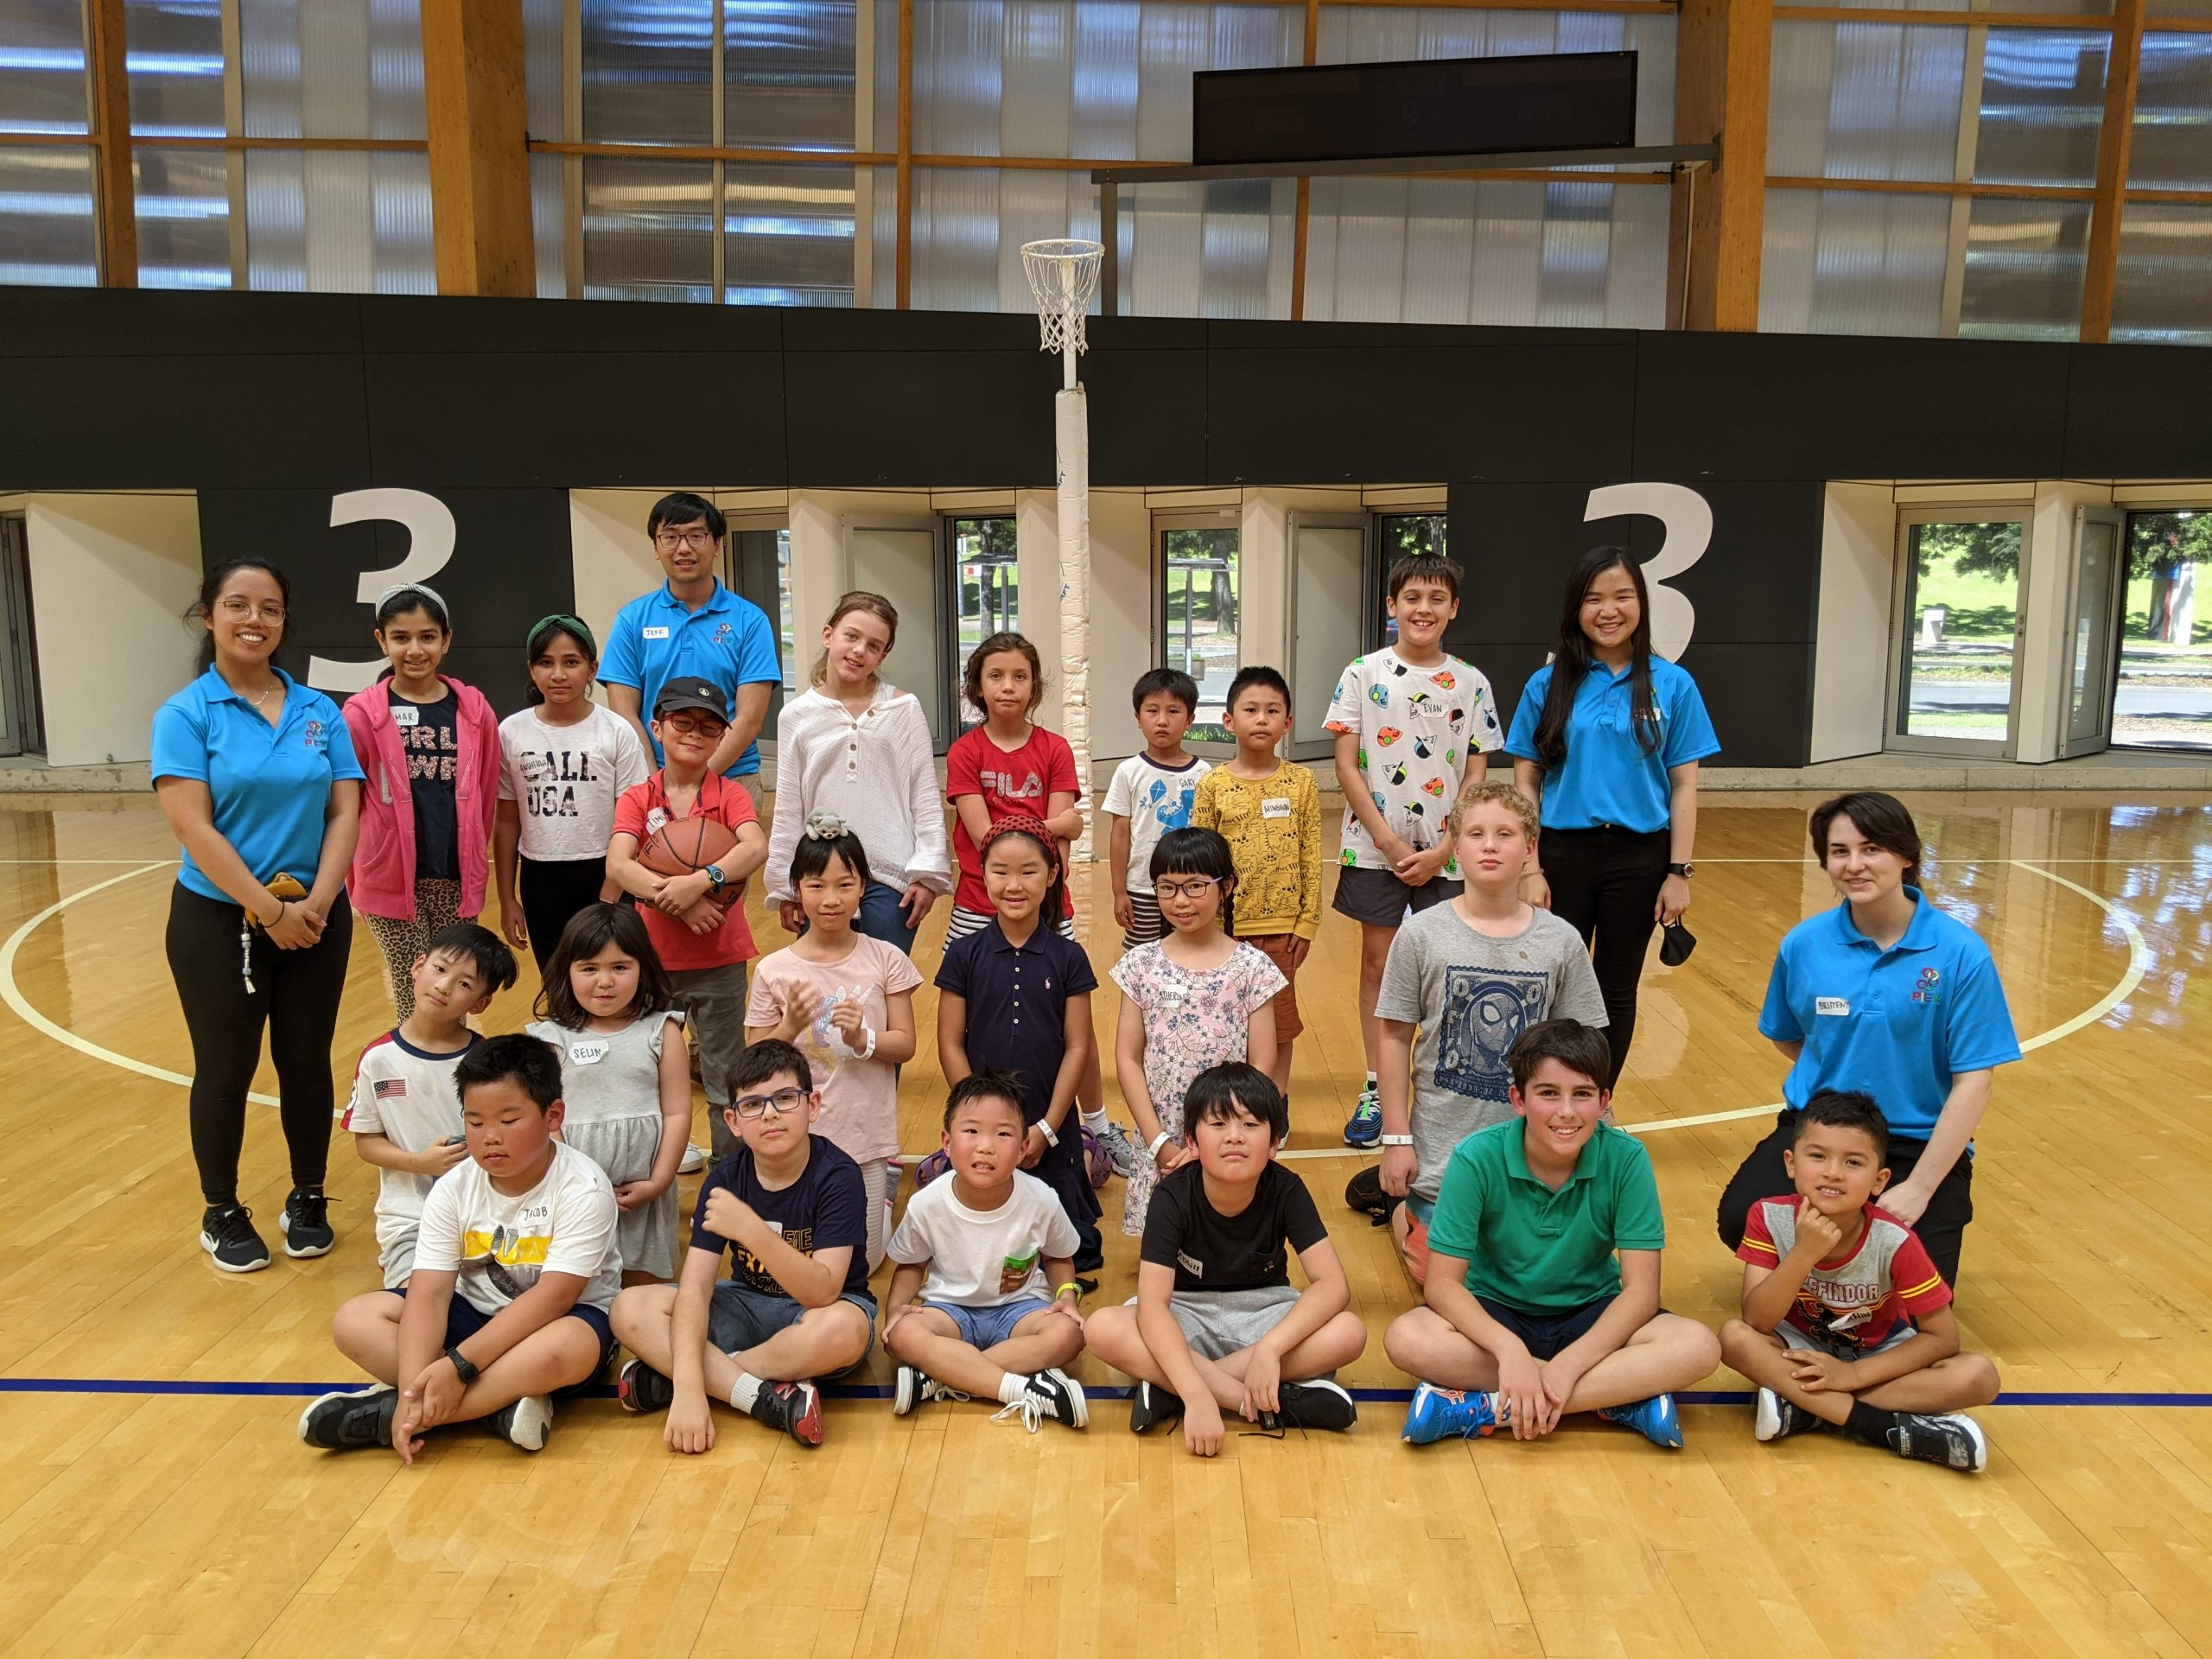 Group of PIEX kids and teachers in a basketball court